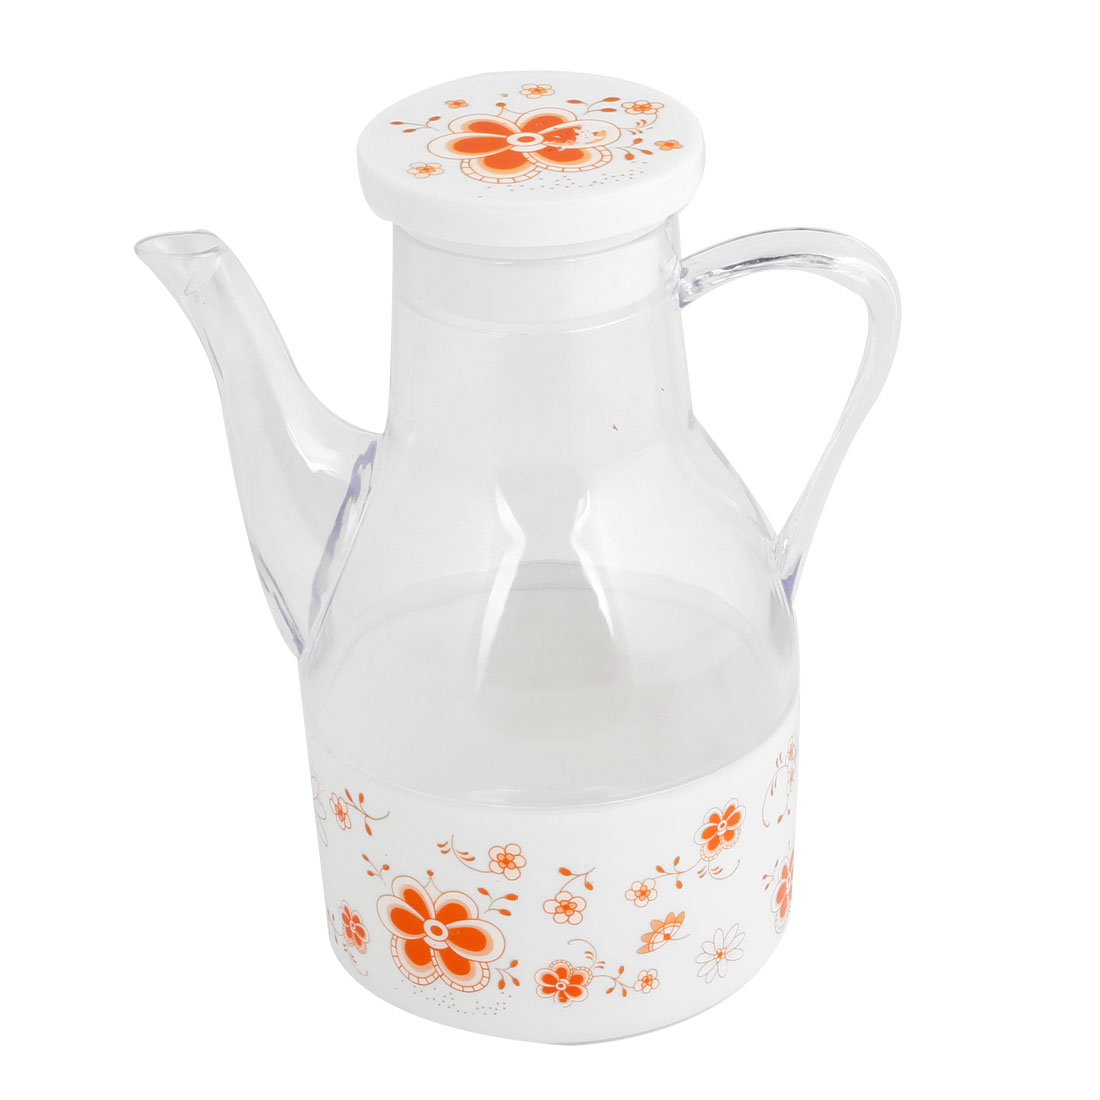 Plastic Orange Flower Pattern Cooking Vinegar Sauce Holder Pot Clear 500ml